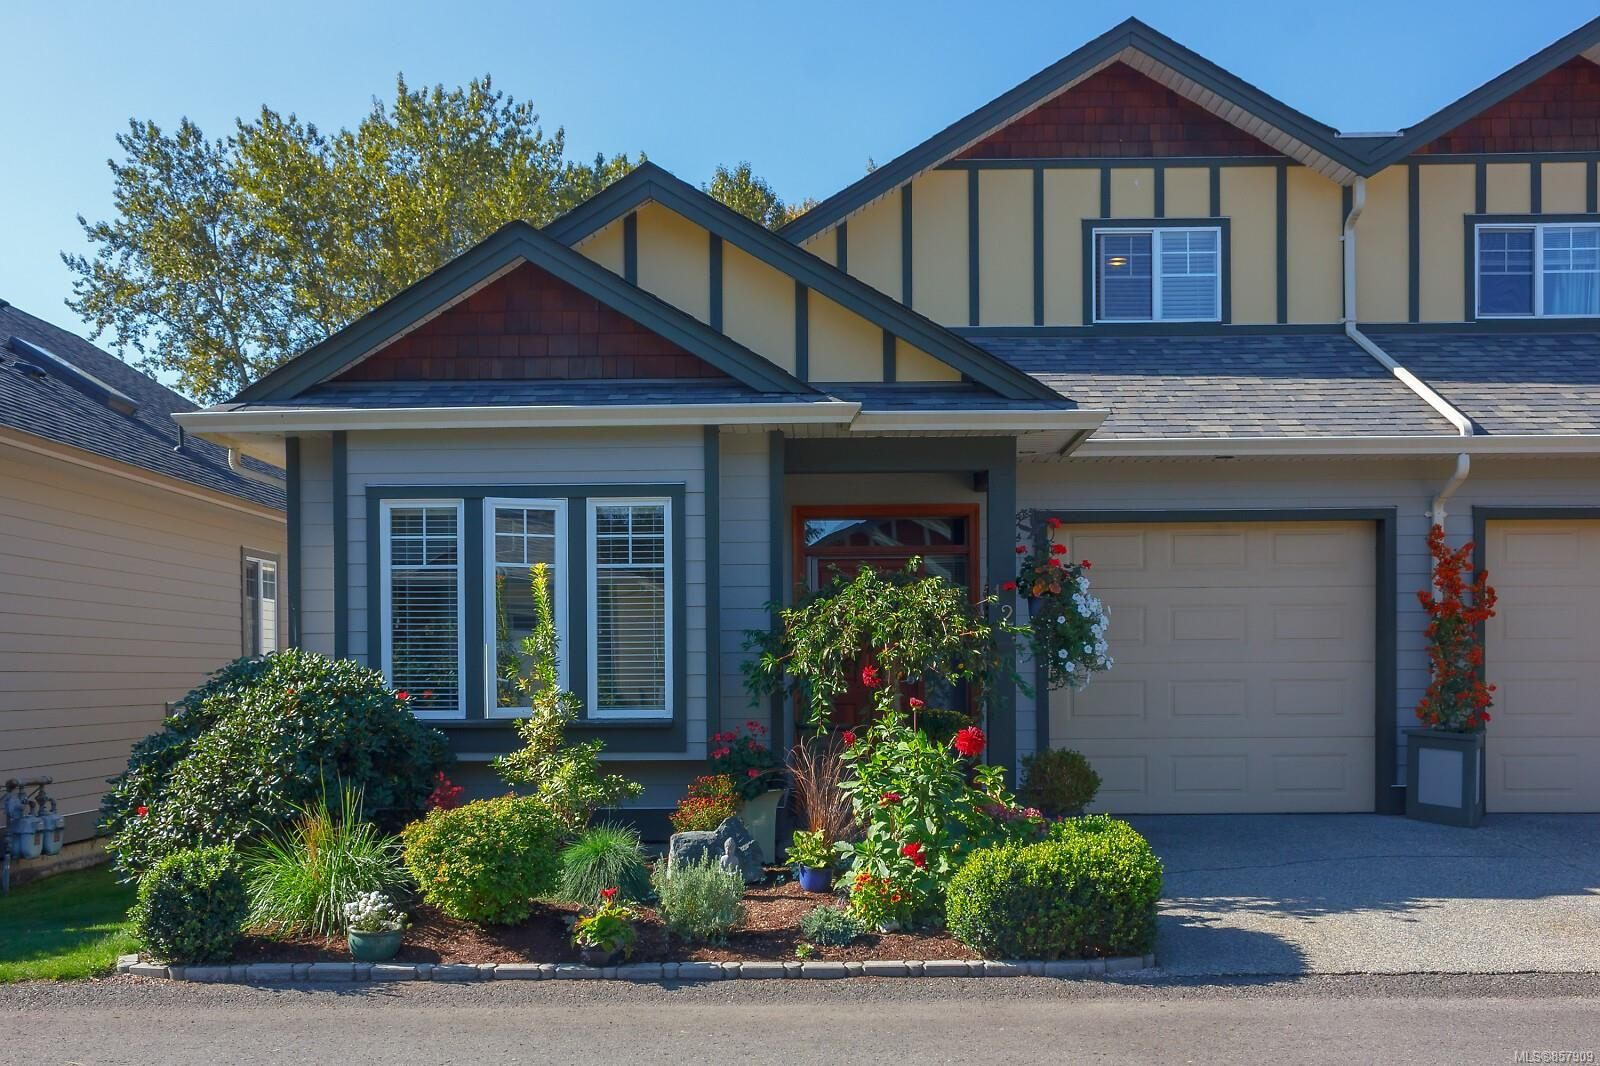 Main Photo: 12 131 McKinstry Rd in : Du East Duncan Row/Townhouse for sale (Duncan)  : MLS®# 857909